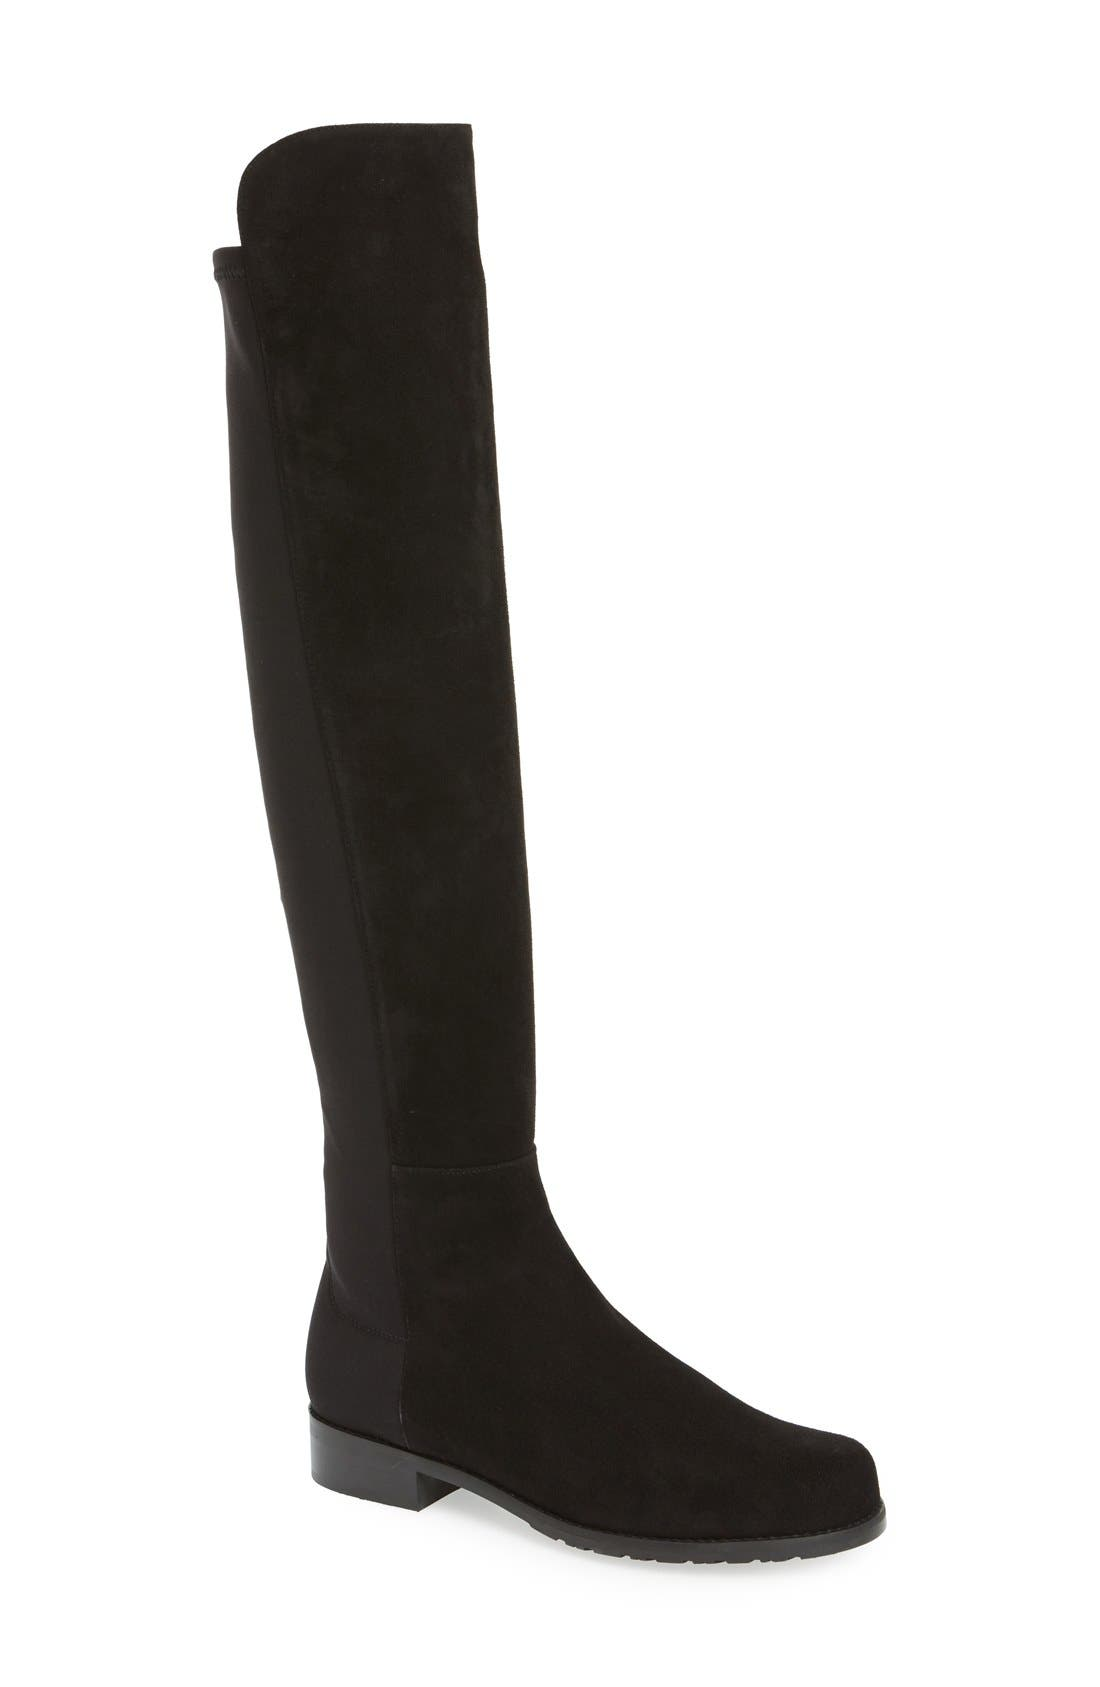 5050 Over The Knee Leather Boot by Stuart Weitzman